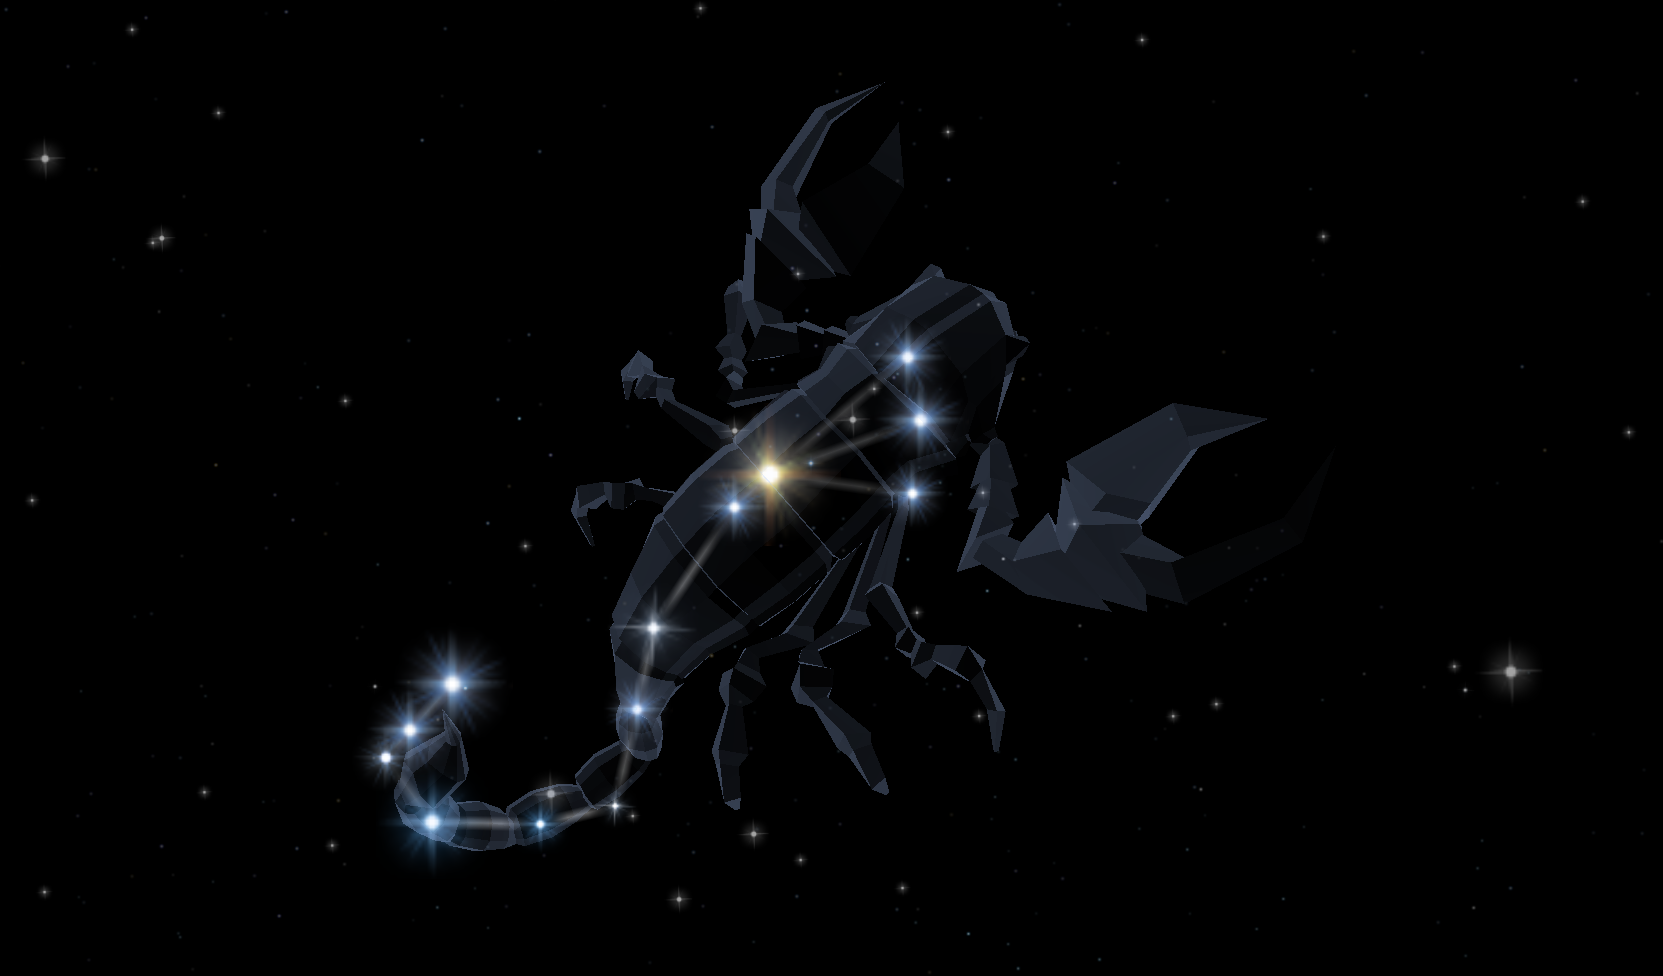 Scorpius - The Stars and Planets